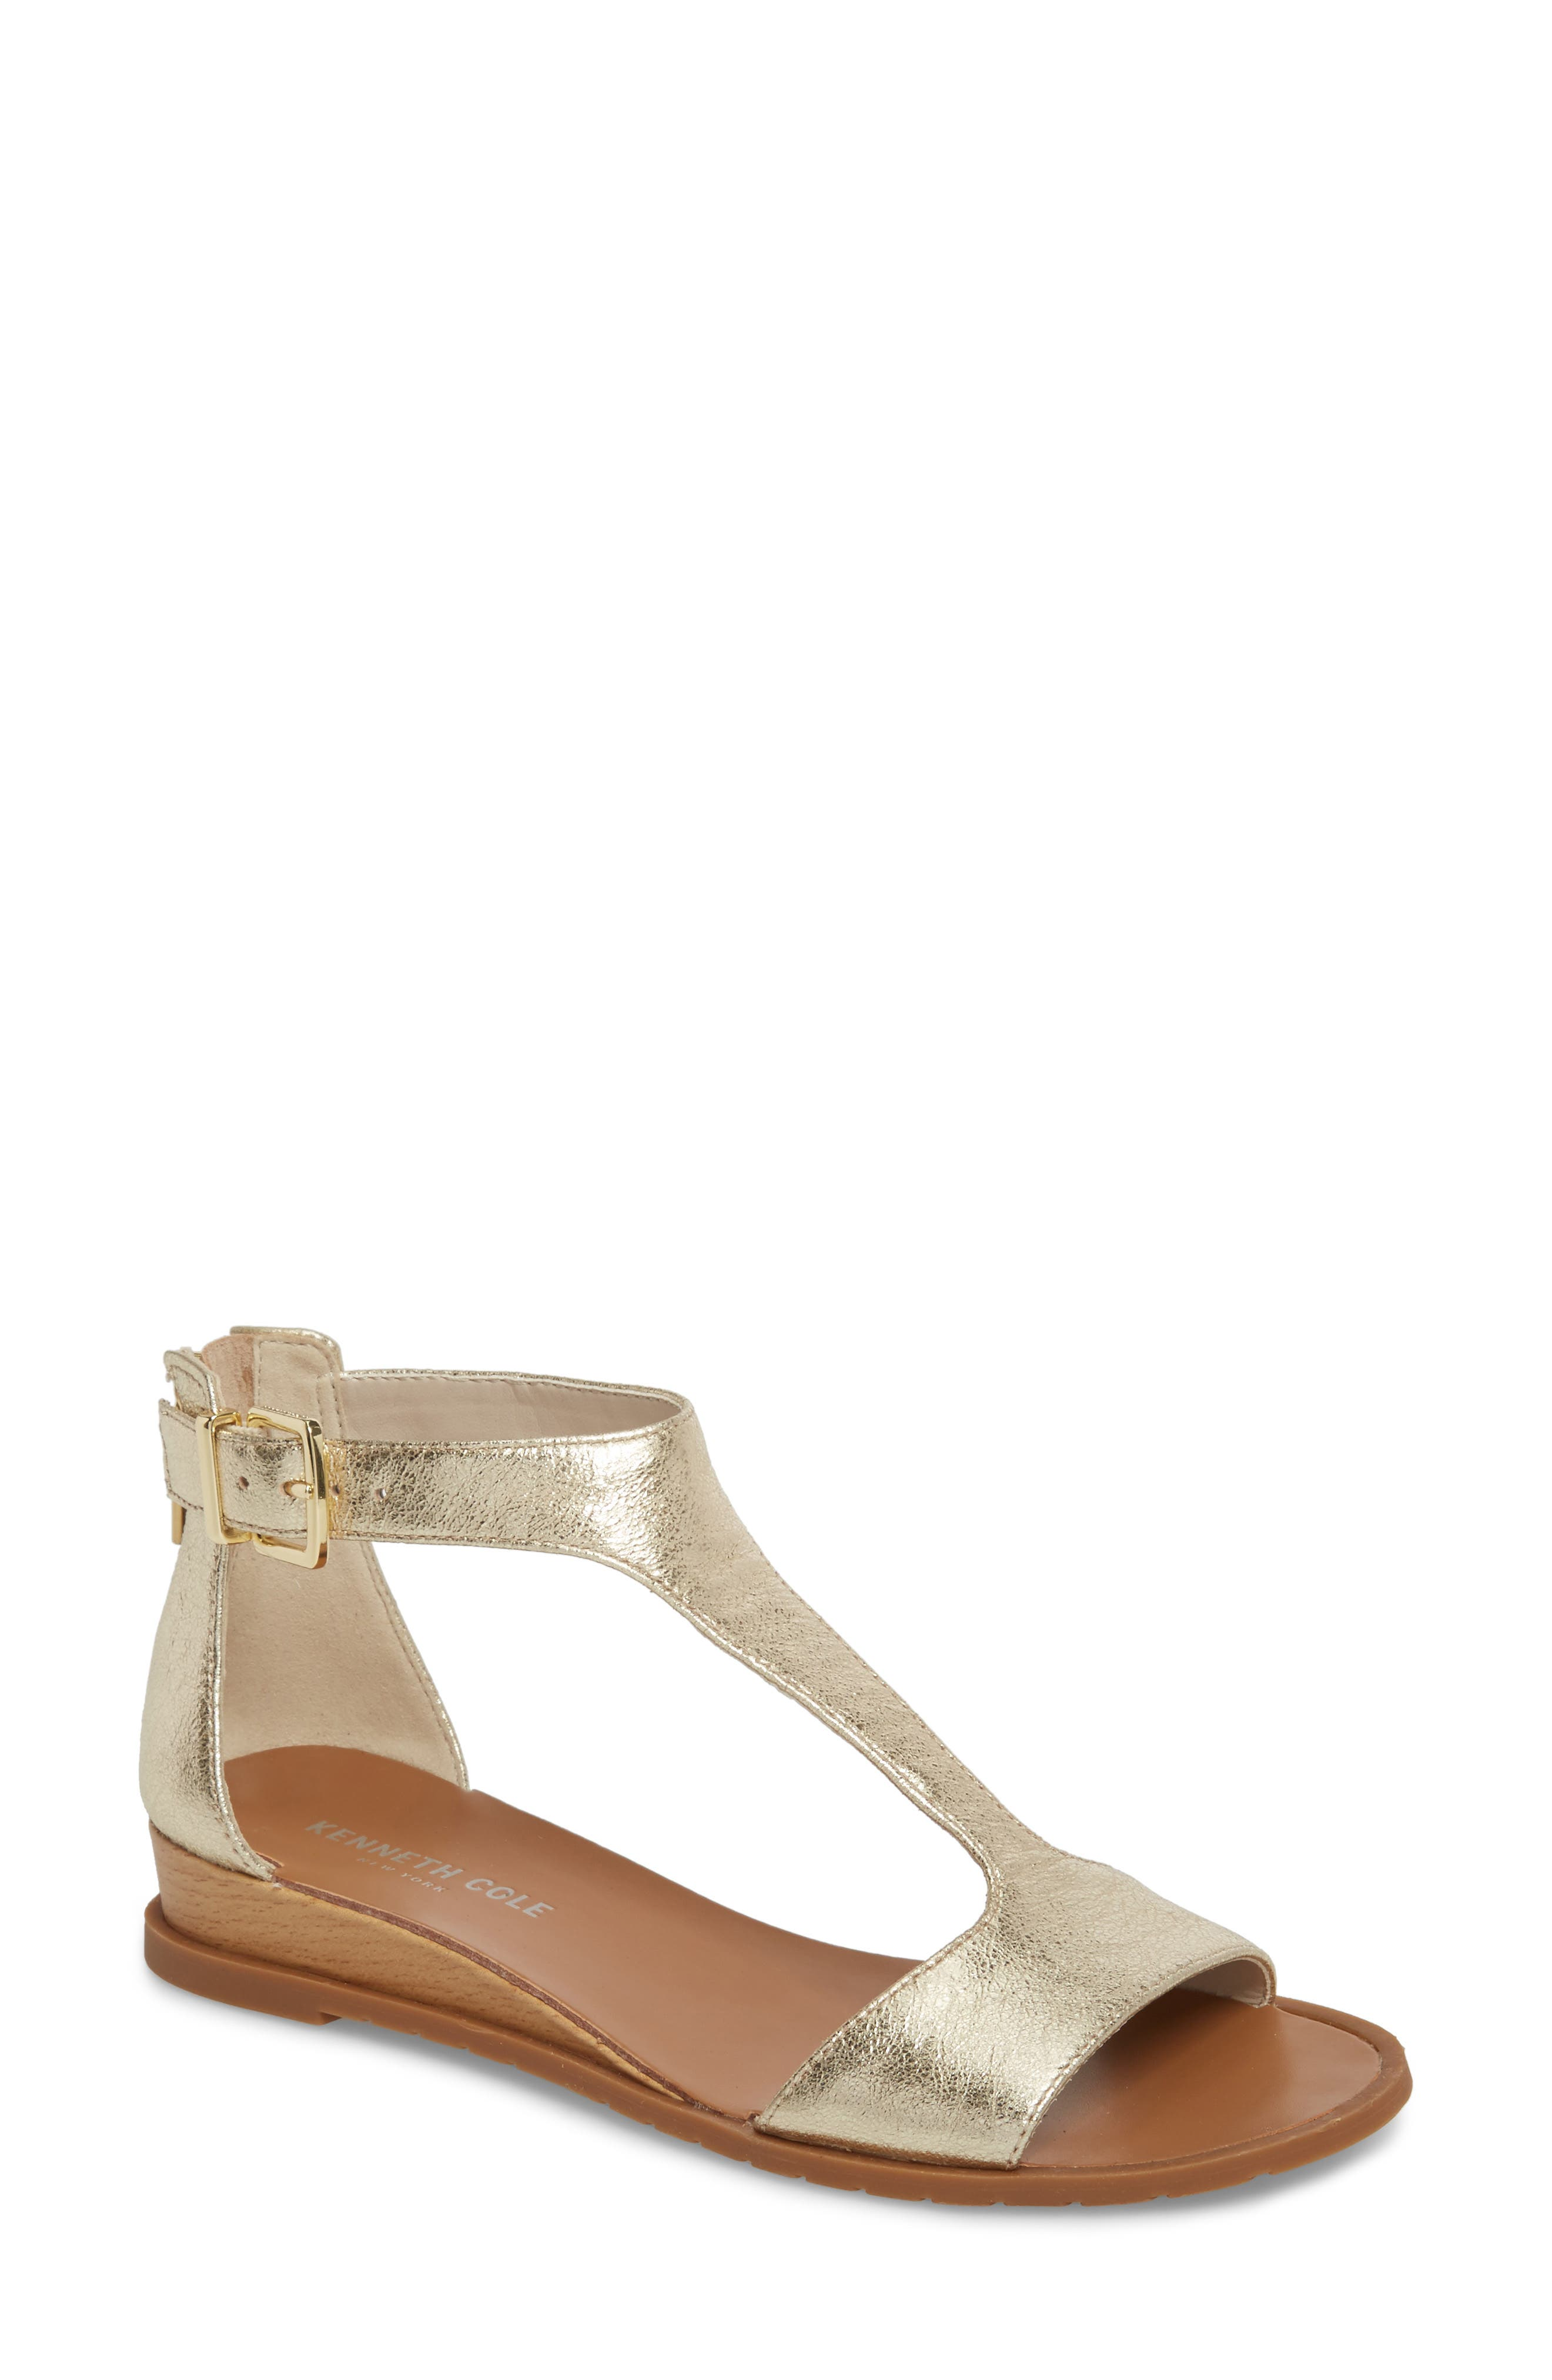 Kenneth Cole New York Judd T-Strap Sandal (Women)